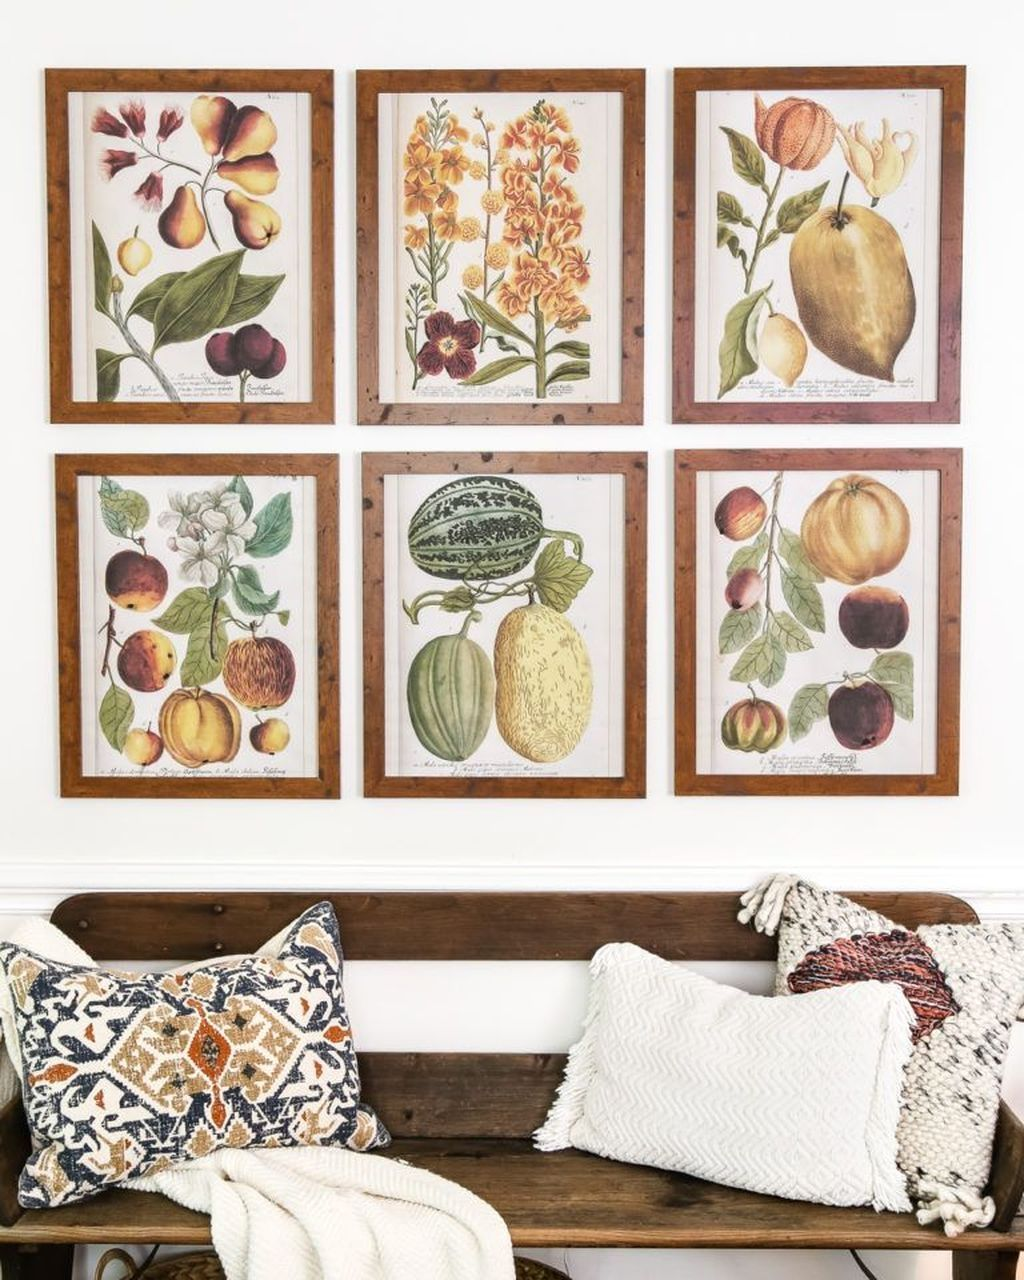 44 inspiring fall wall decor ideas popular to apply this year